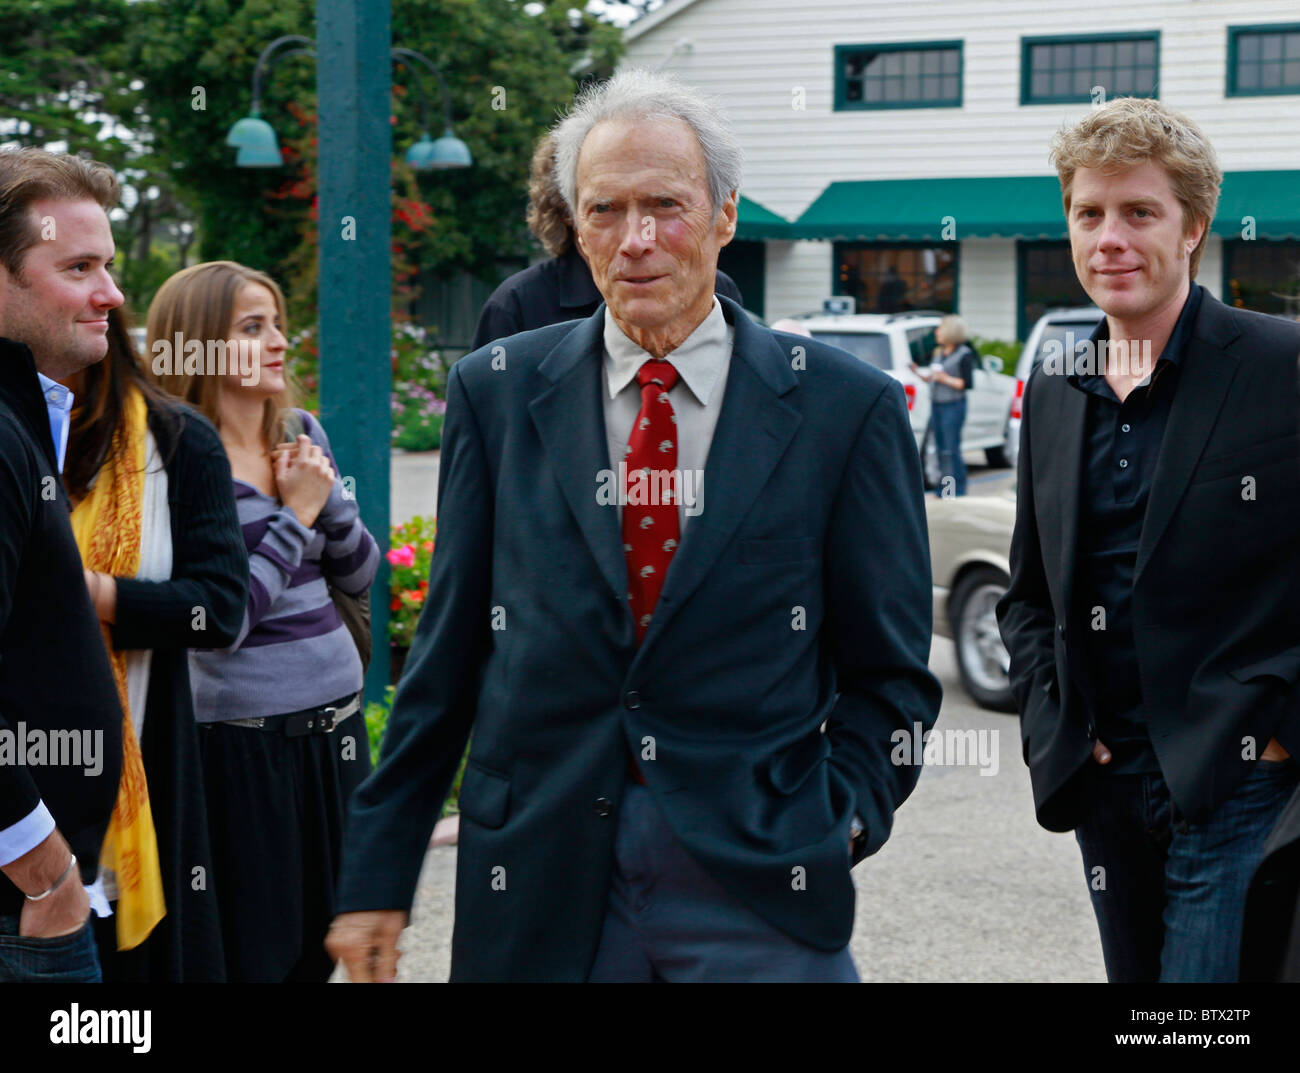 CLINT EASTWOOD attends a Monterey Jazz Festival reception at his Mission Ranch - CARMEL, CALIFORNIA - Stock Image